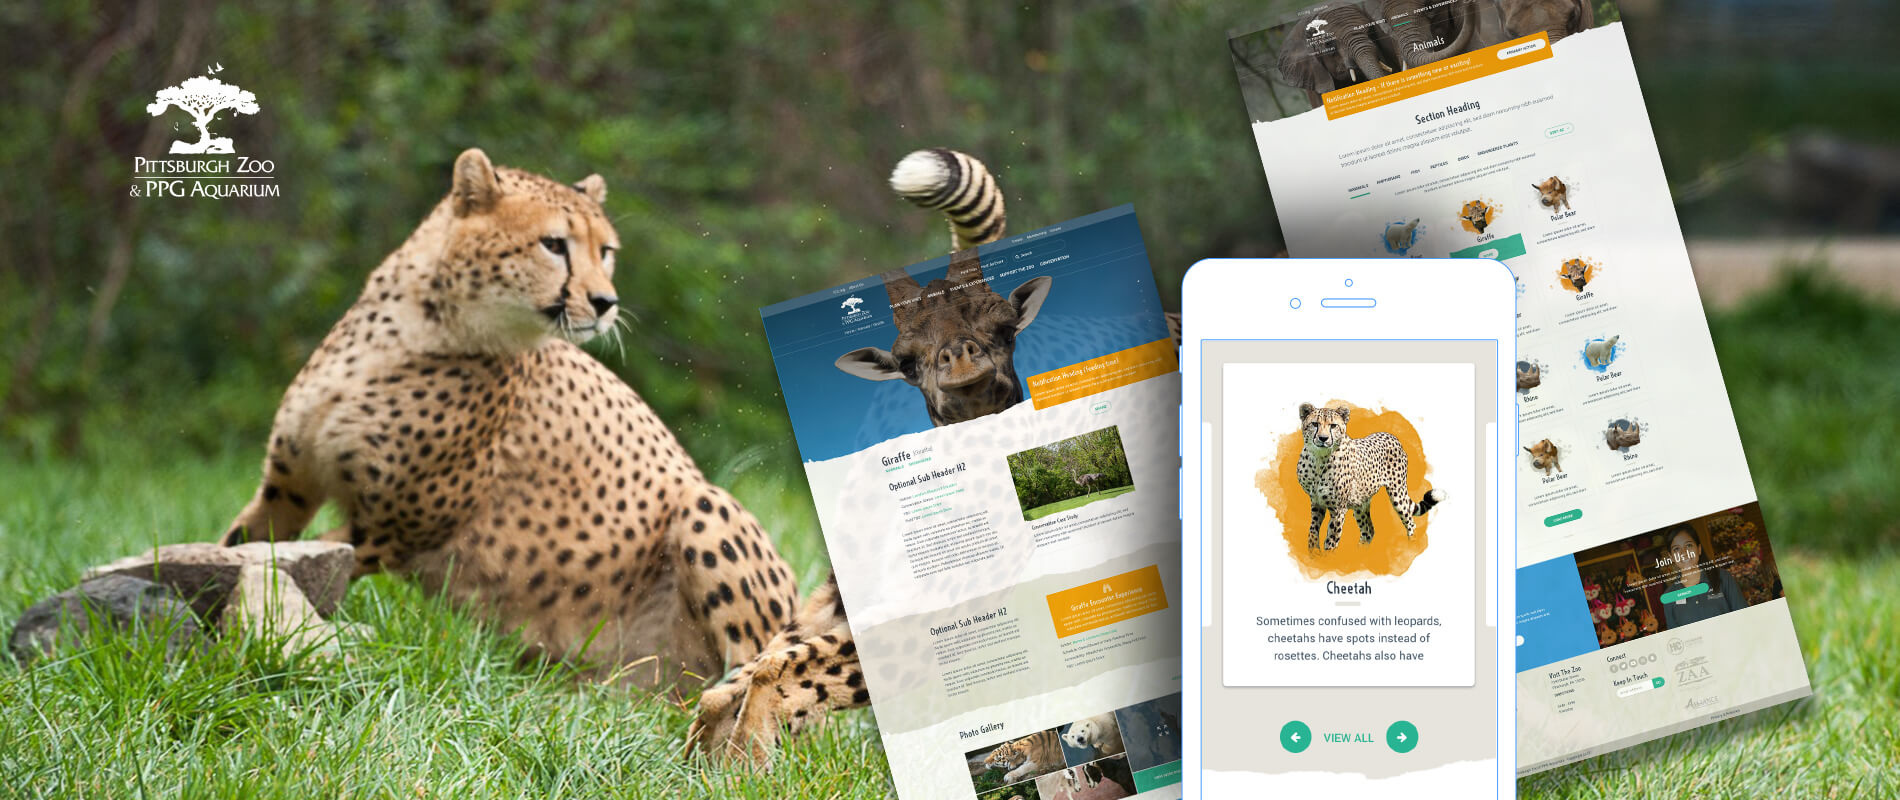 pittsburgh zoo blue archer web design case study